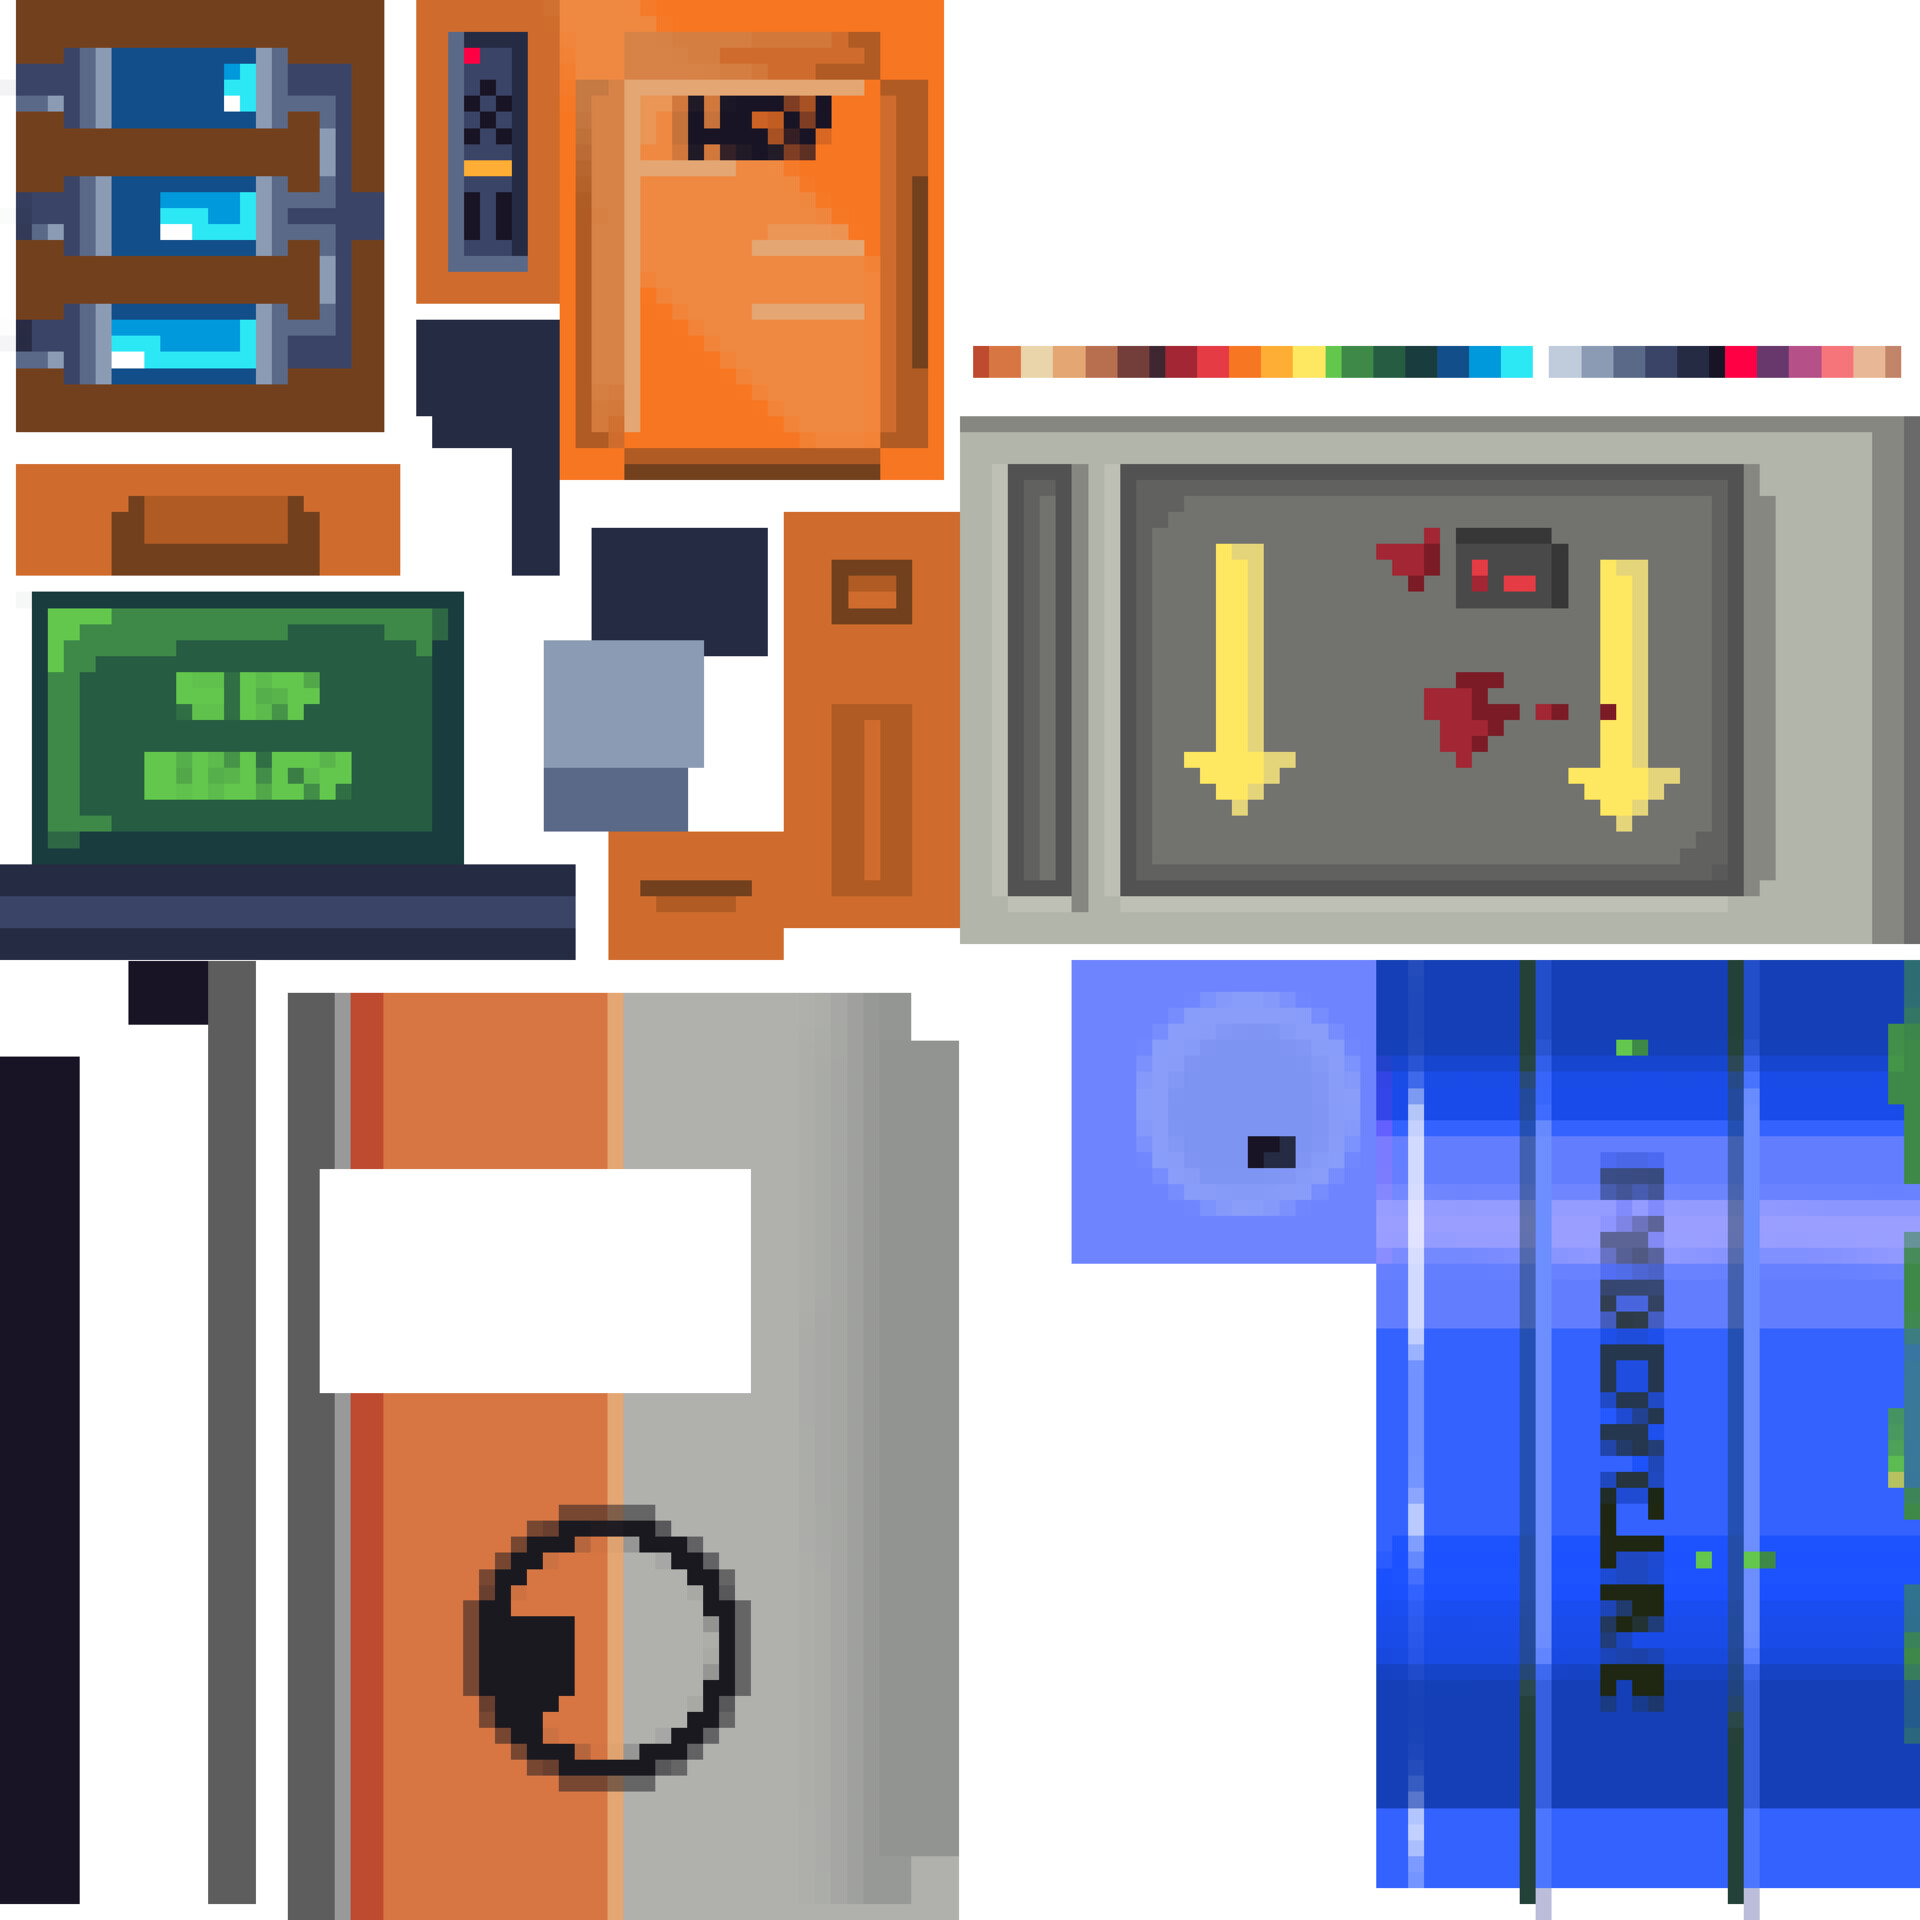 Top right is the colour palette I used. I used this mostly as a guide rather than sticking 100% to it, but I think the flexibility paid off.